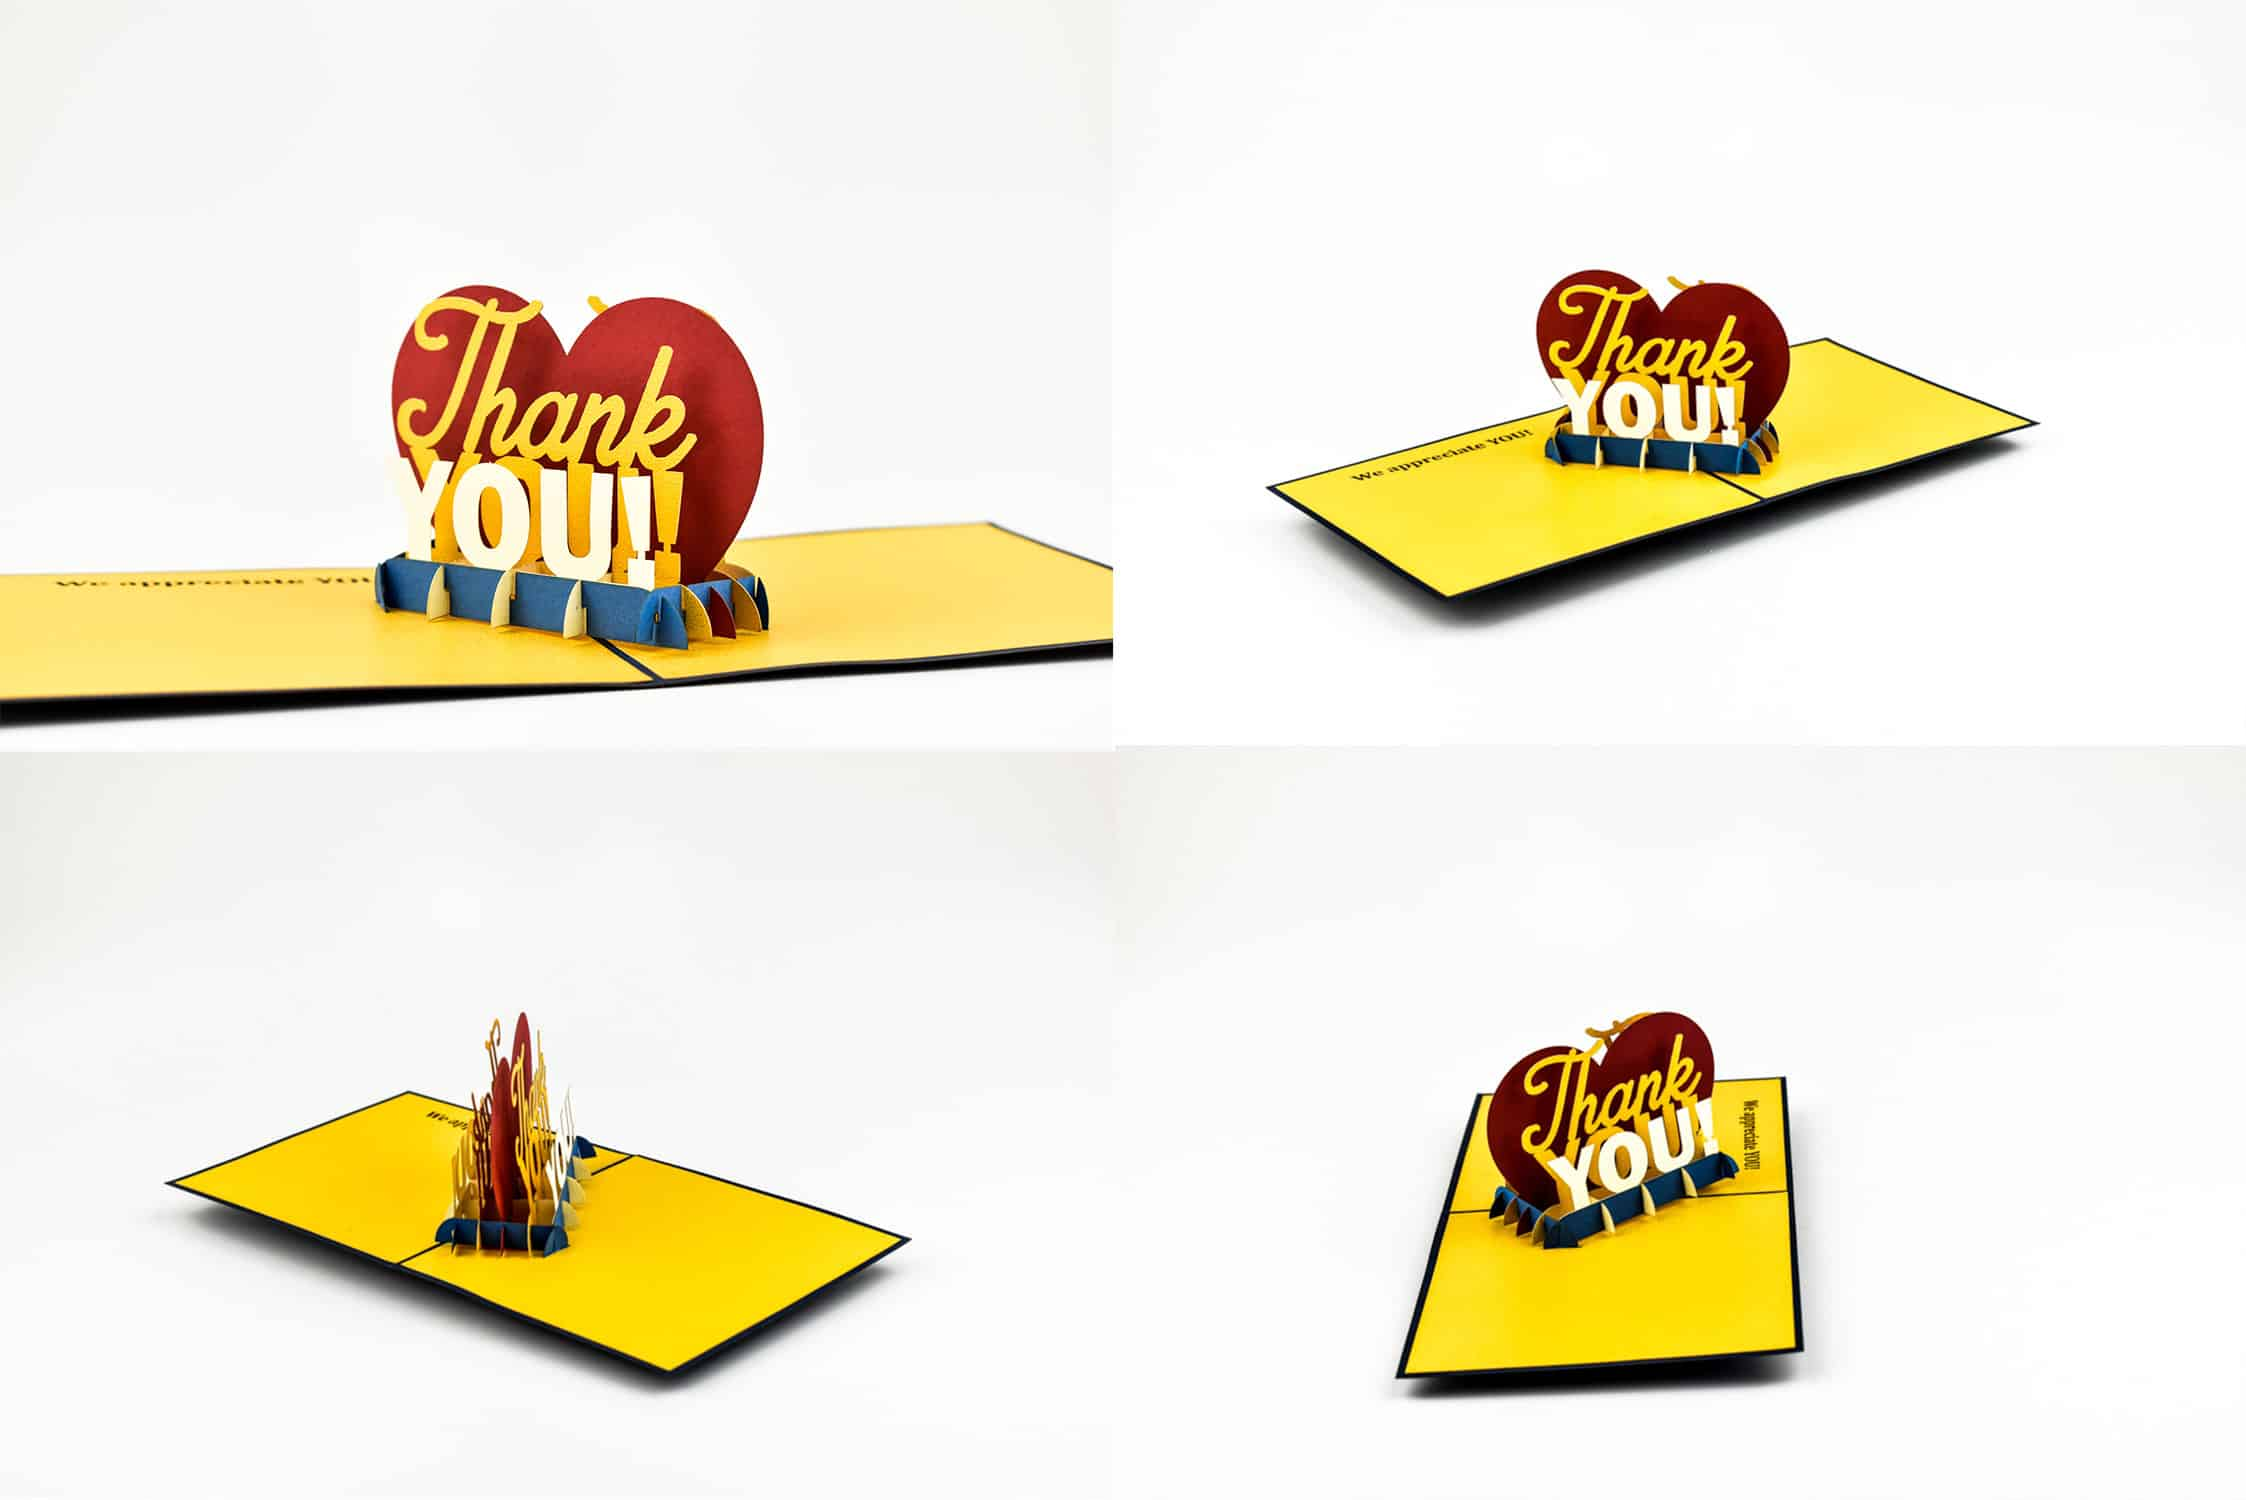 Thank You card images.